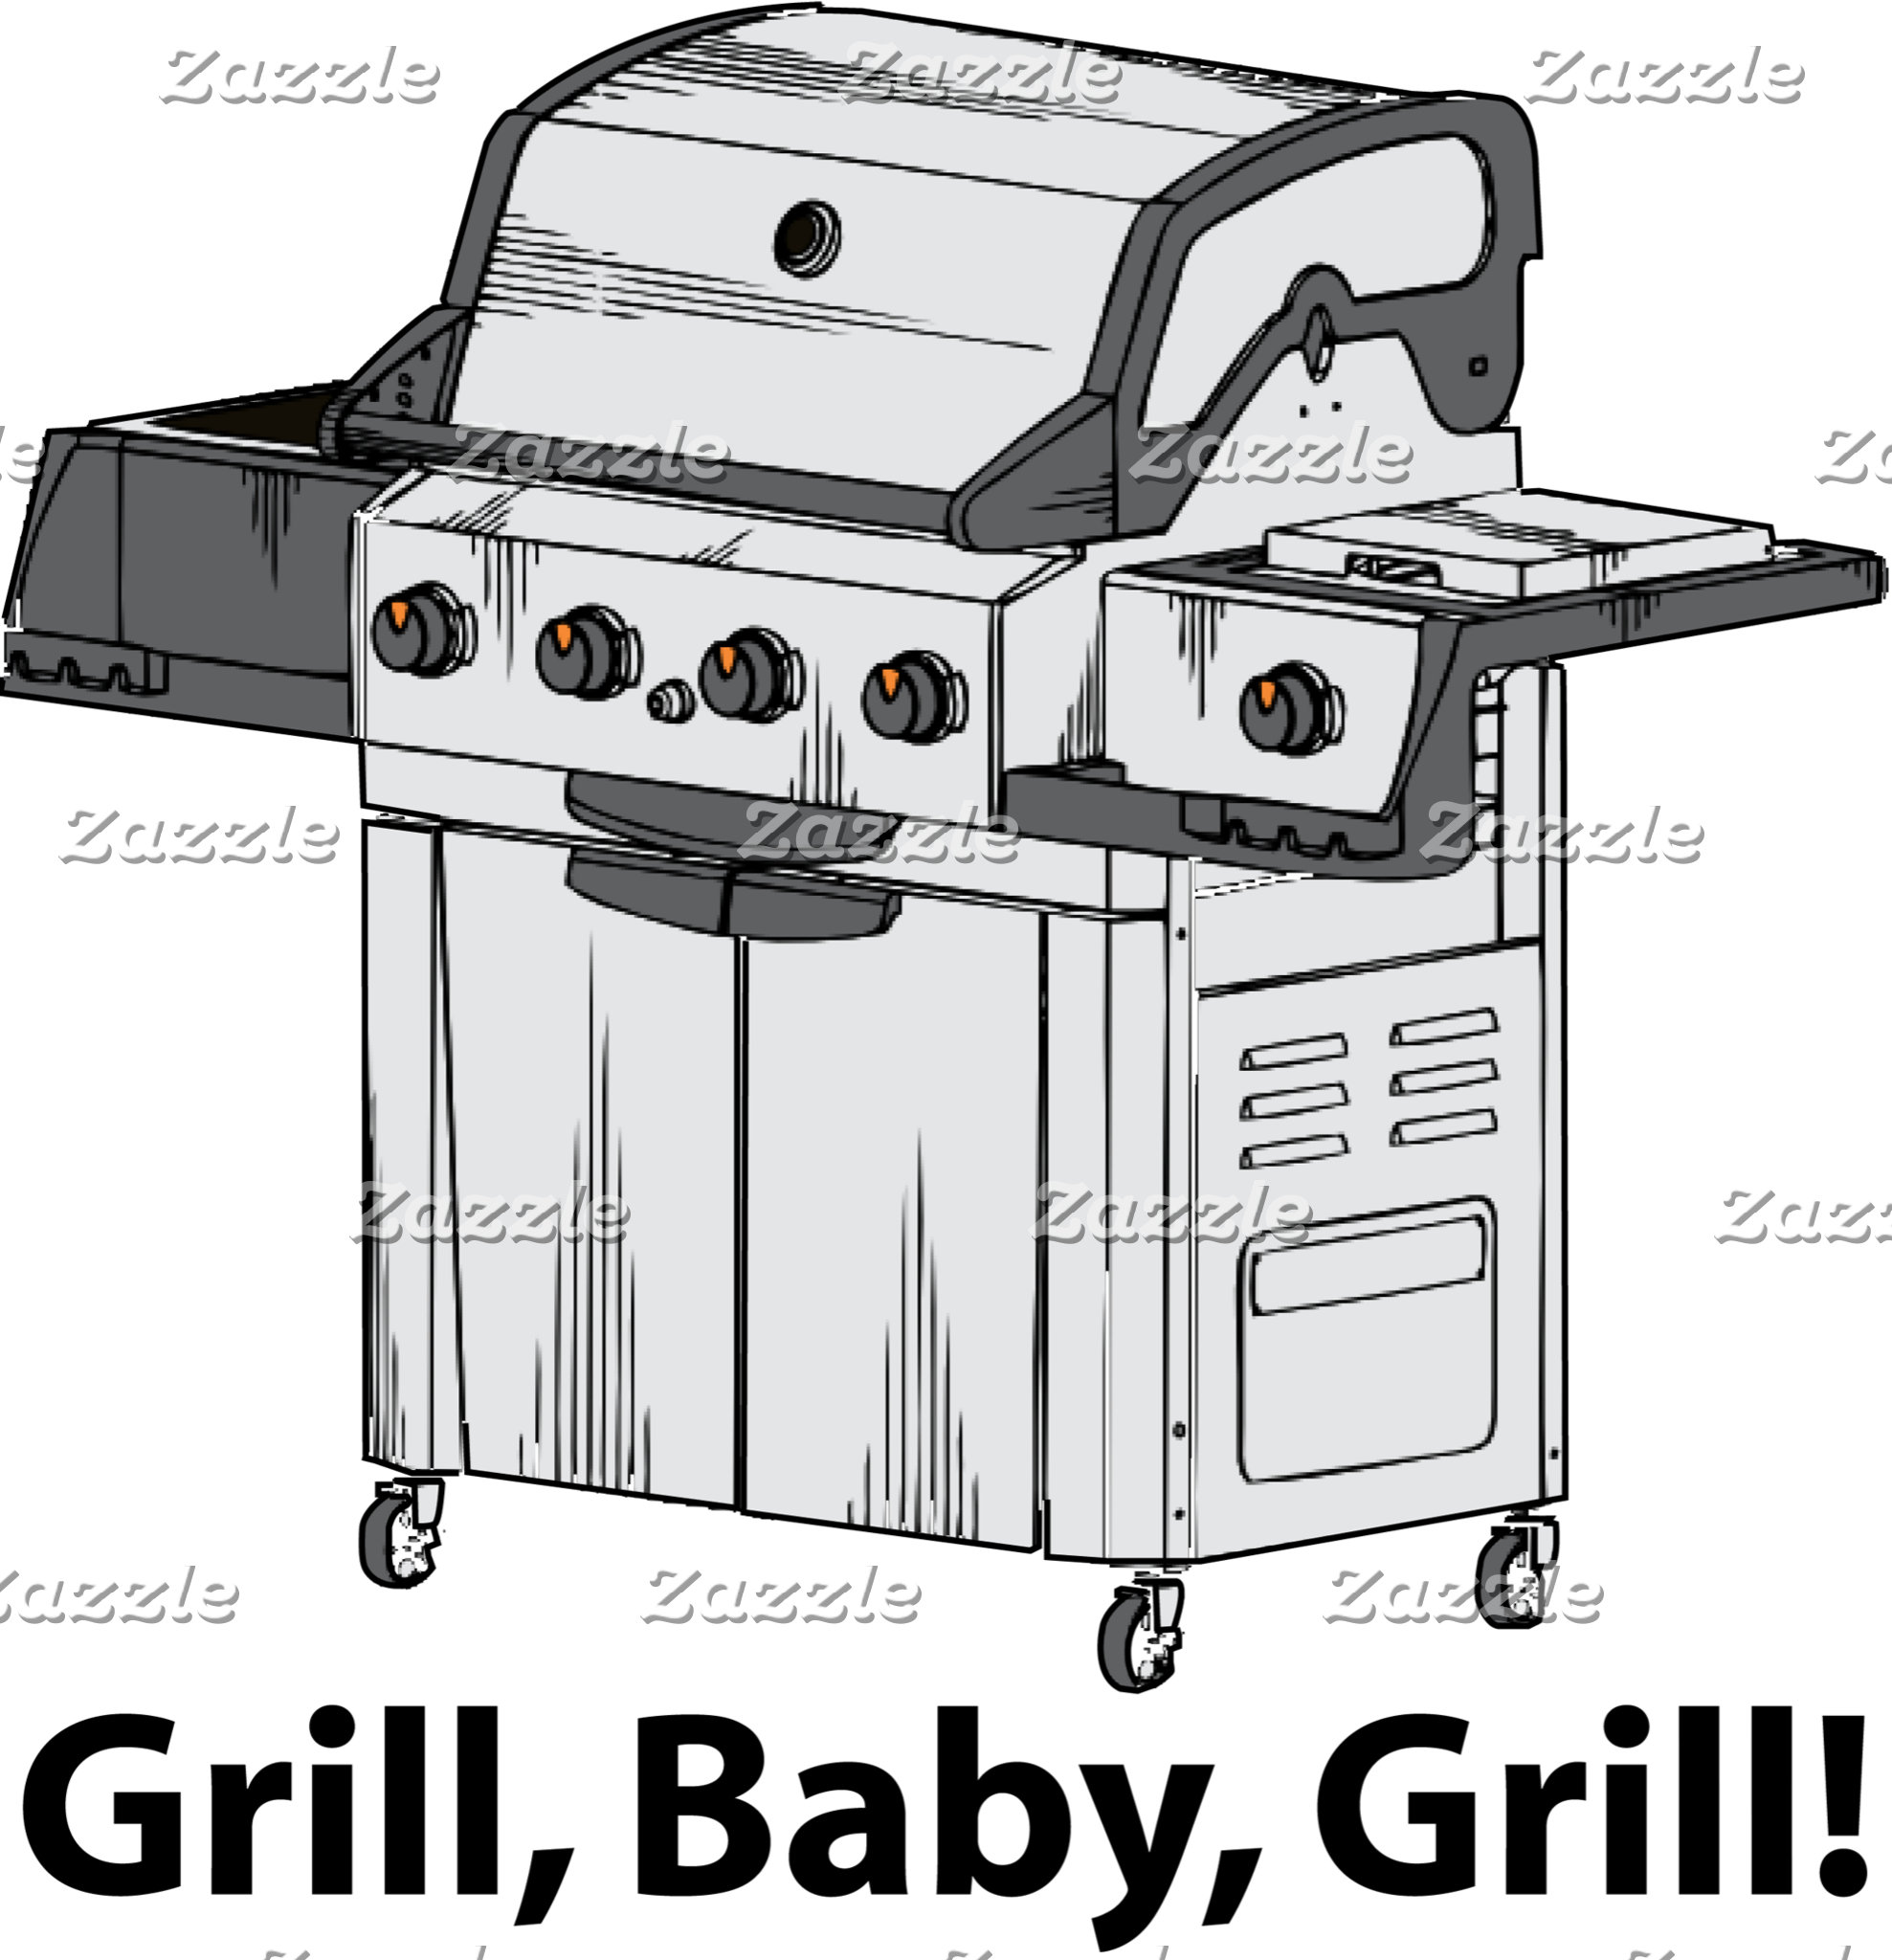 Grill, Baby, Grill